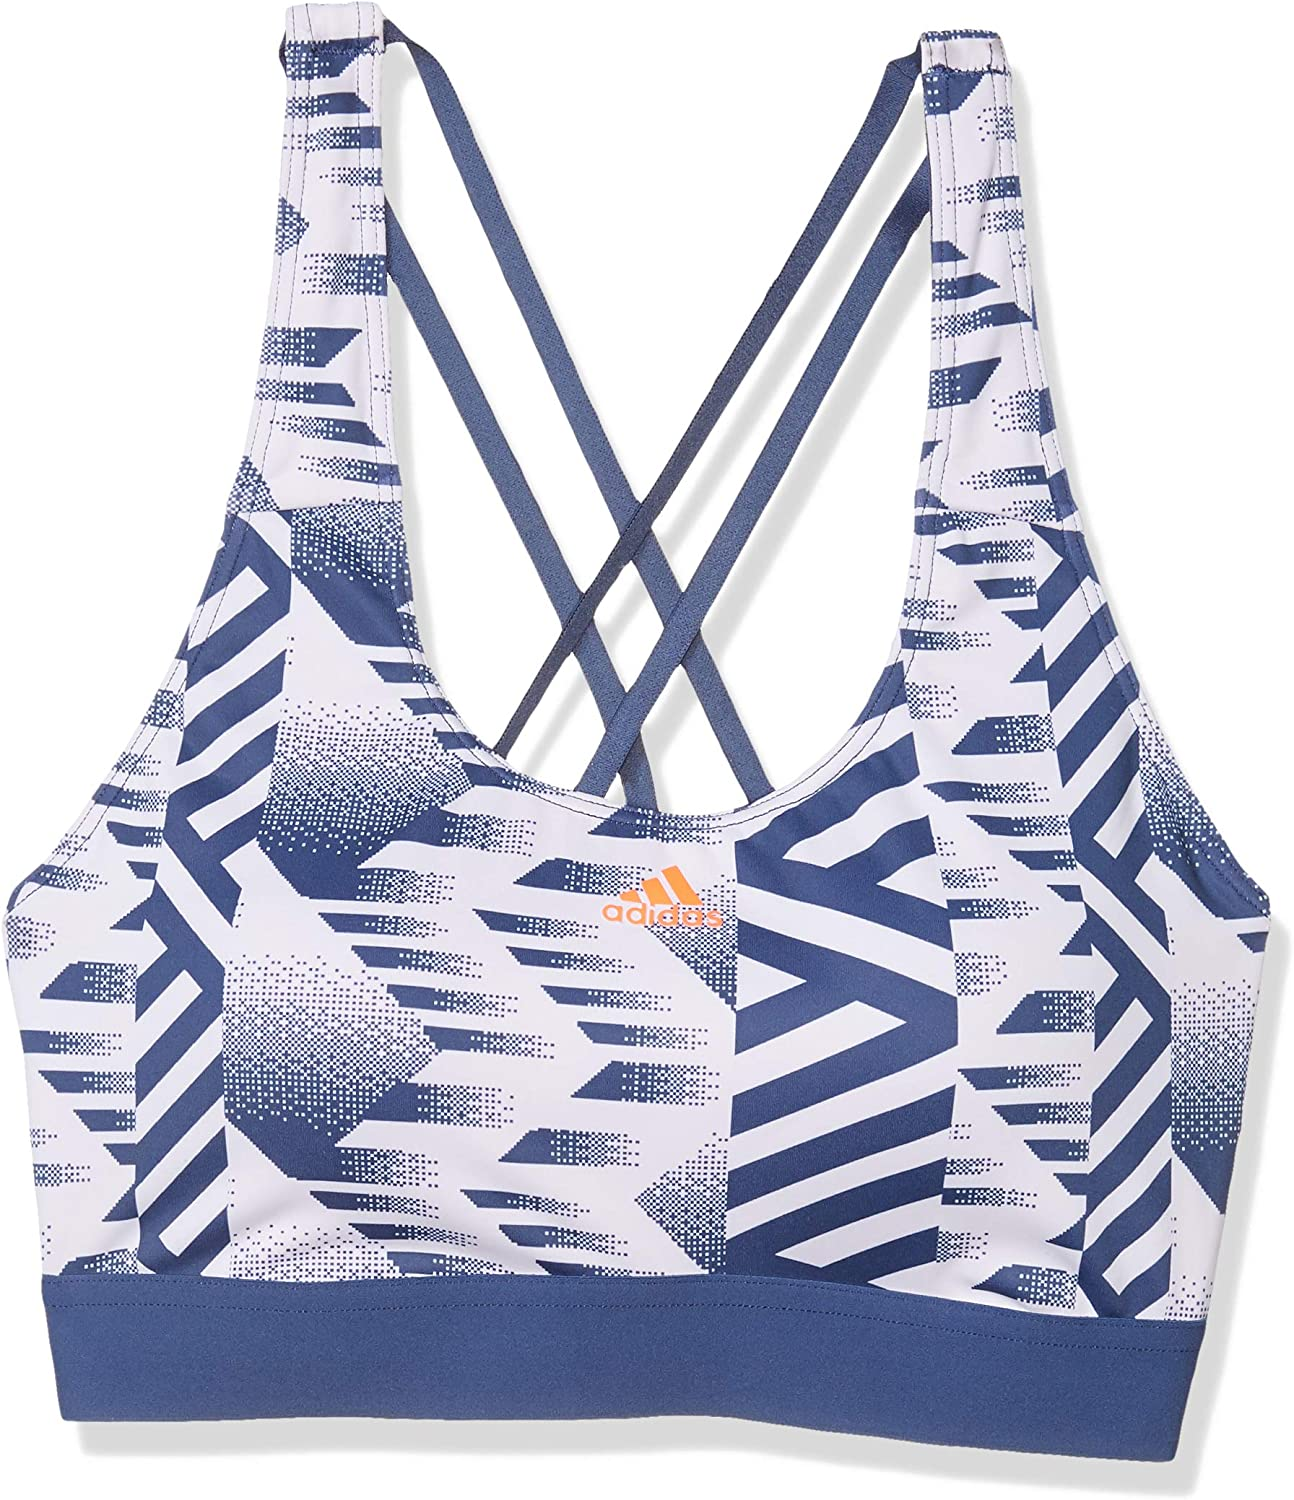 adidas Women's Don't Ranking TOP9 Rest Time sale Swim Top Graphic